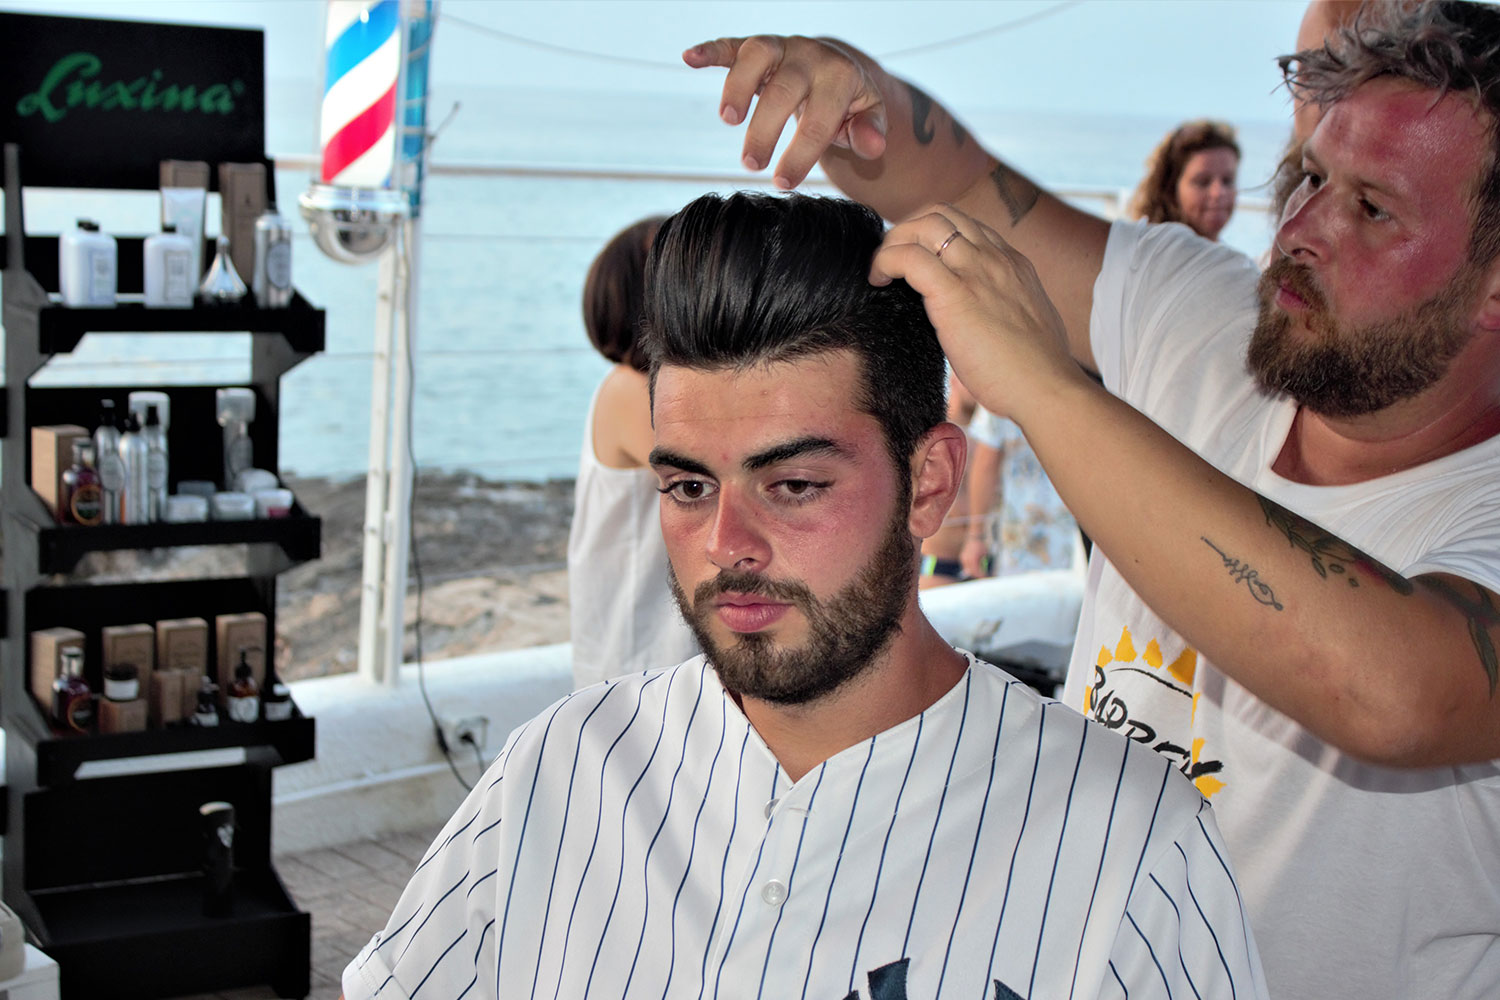 Barbers on the Sea